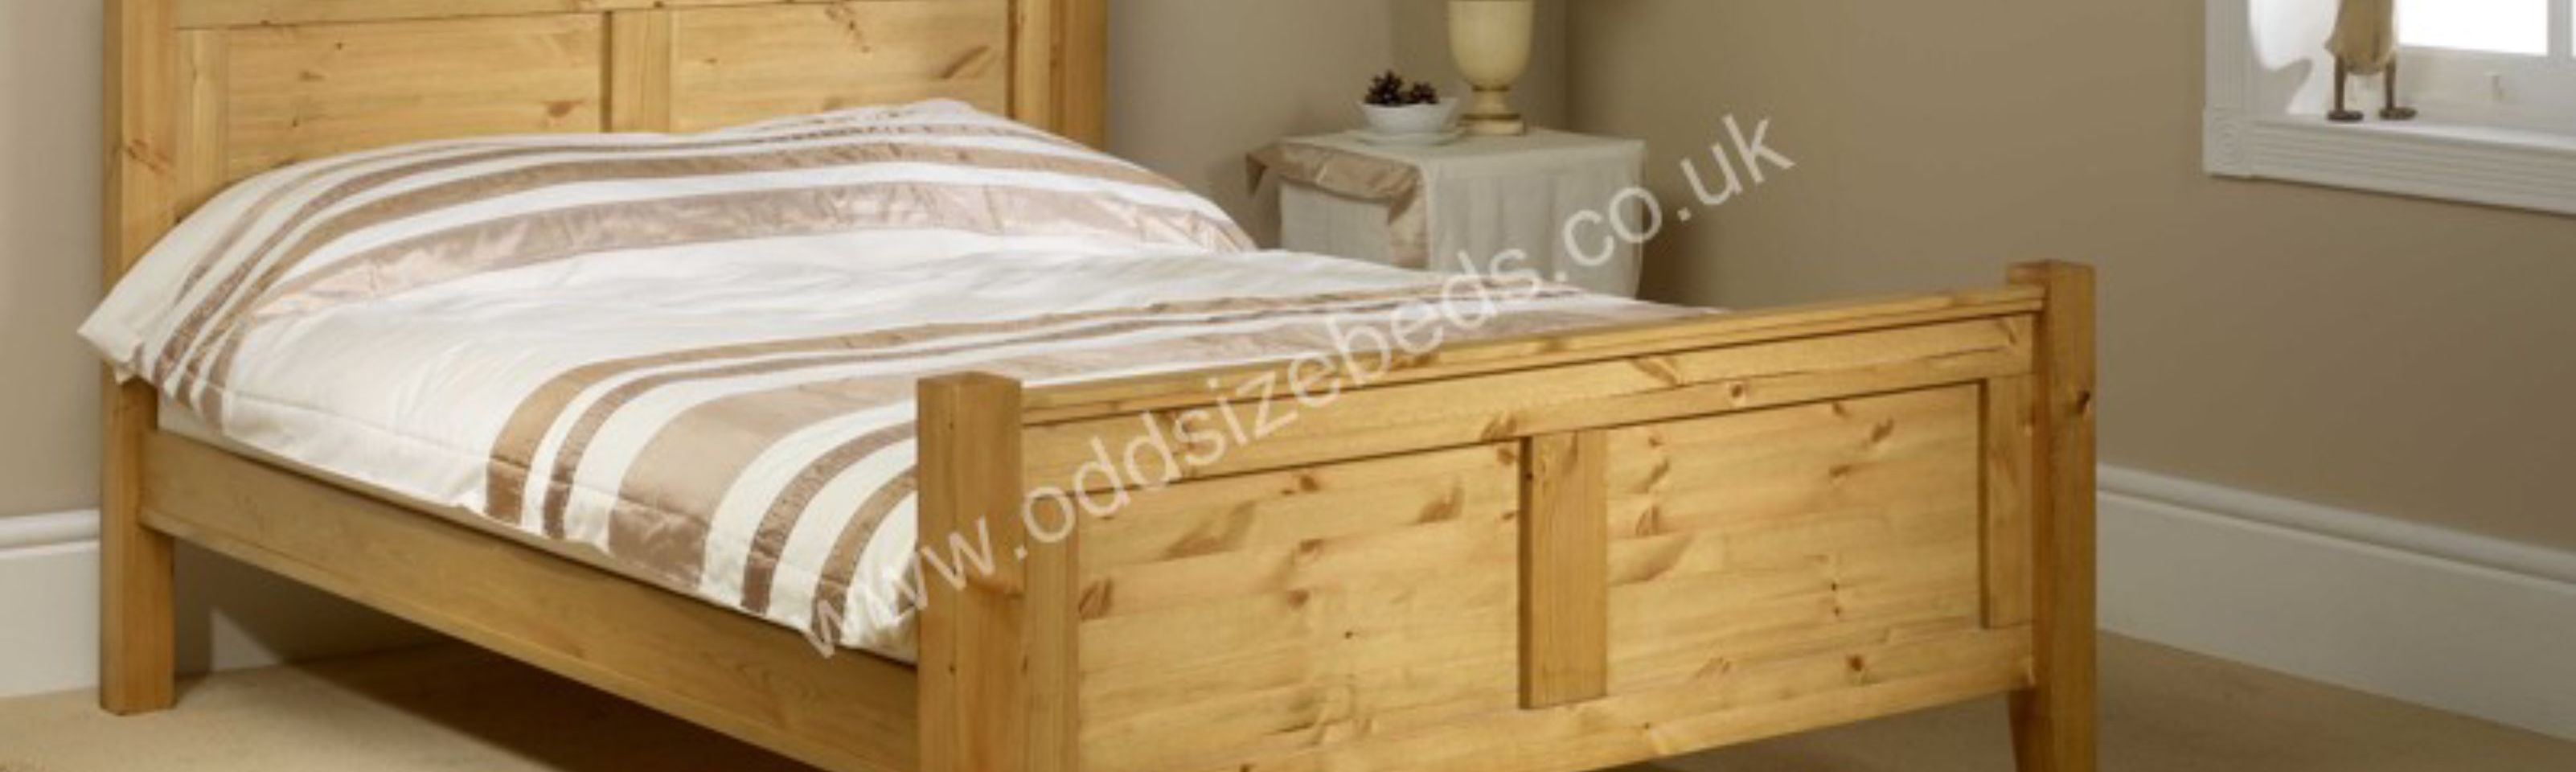 Coniston Wooden Bed High Foot End